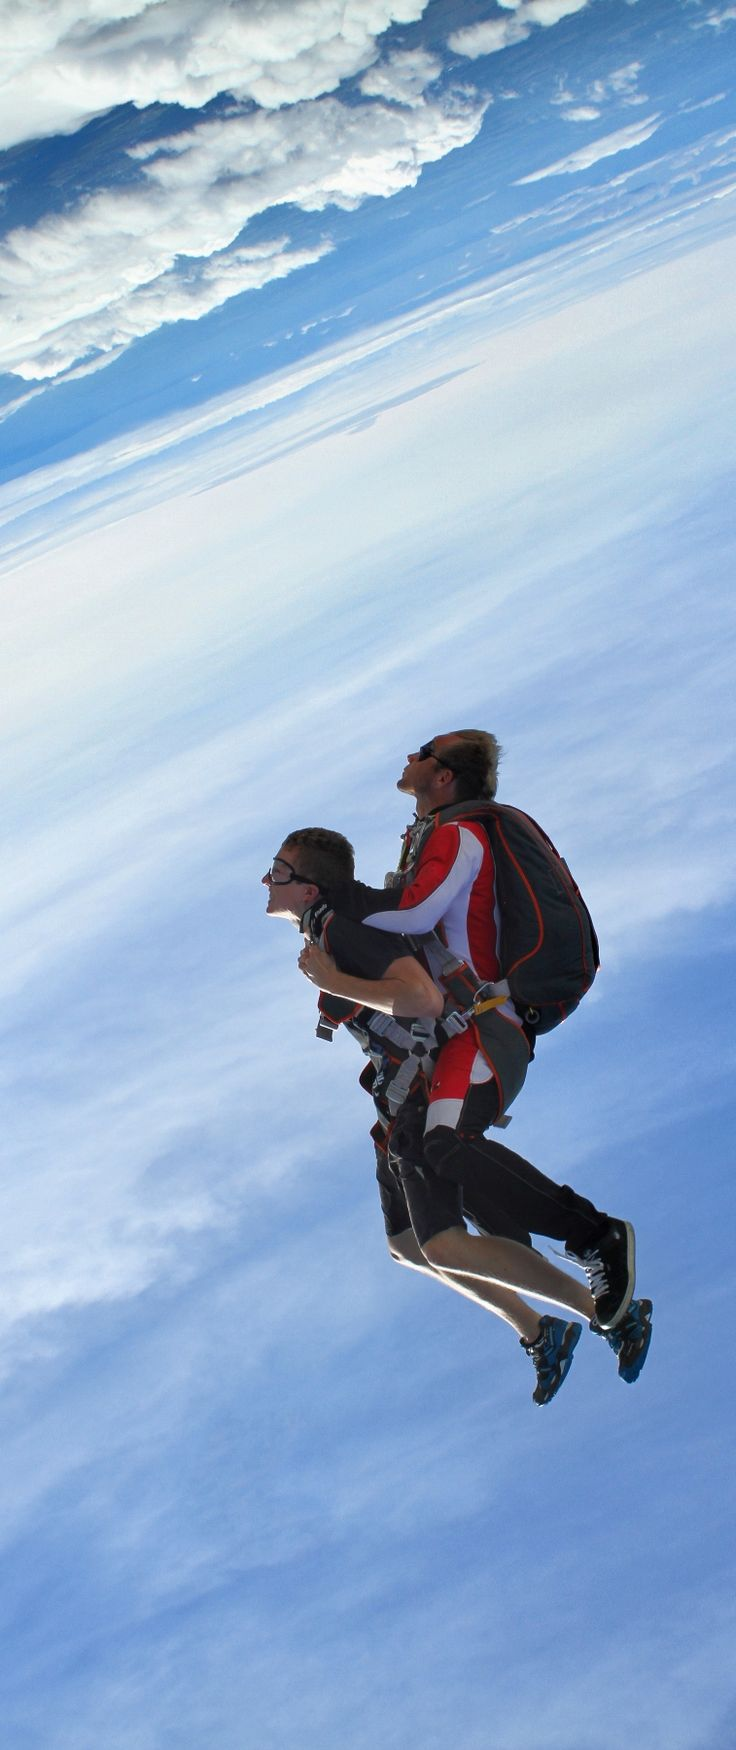 Sky Dive with my husband... he has this planned out for us already. Better start conquering the fear now!